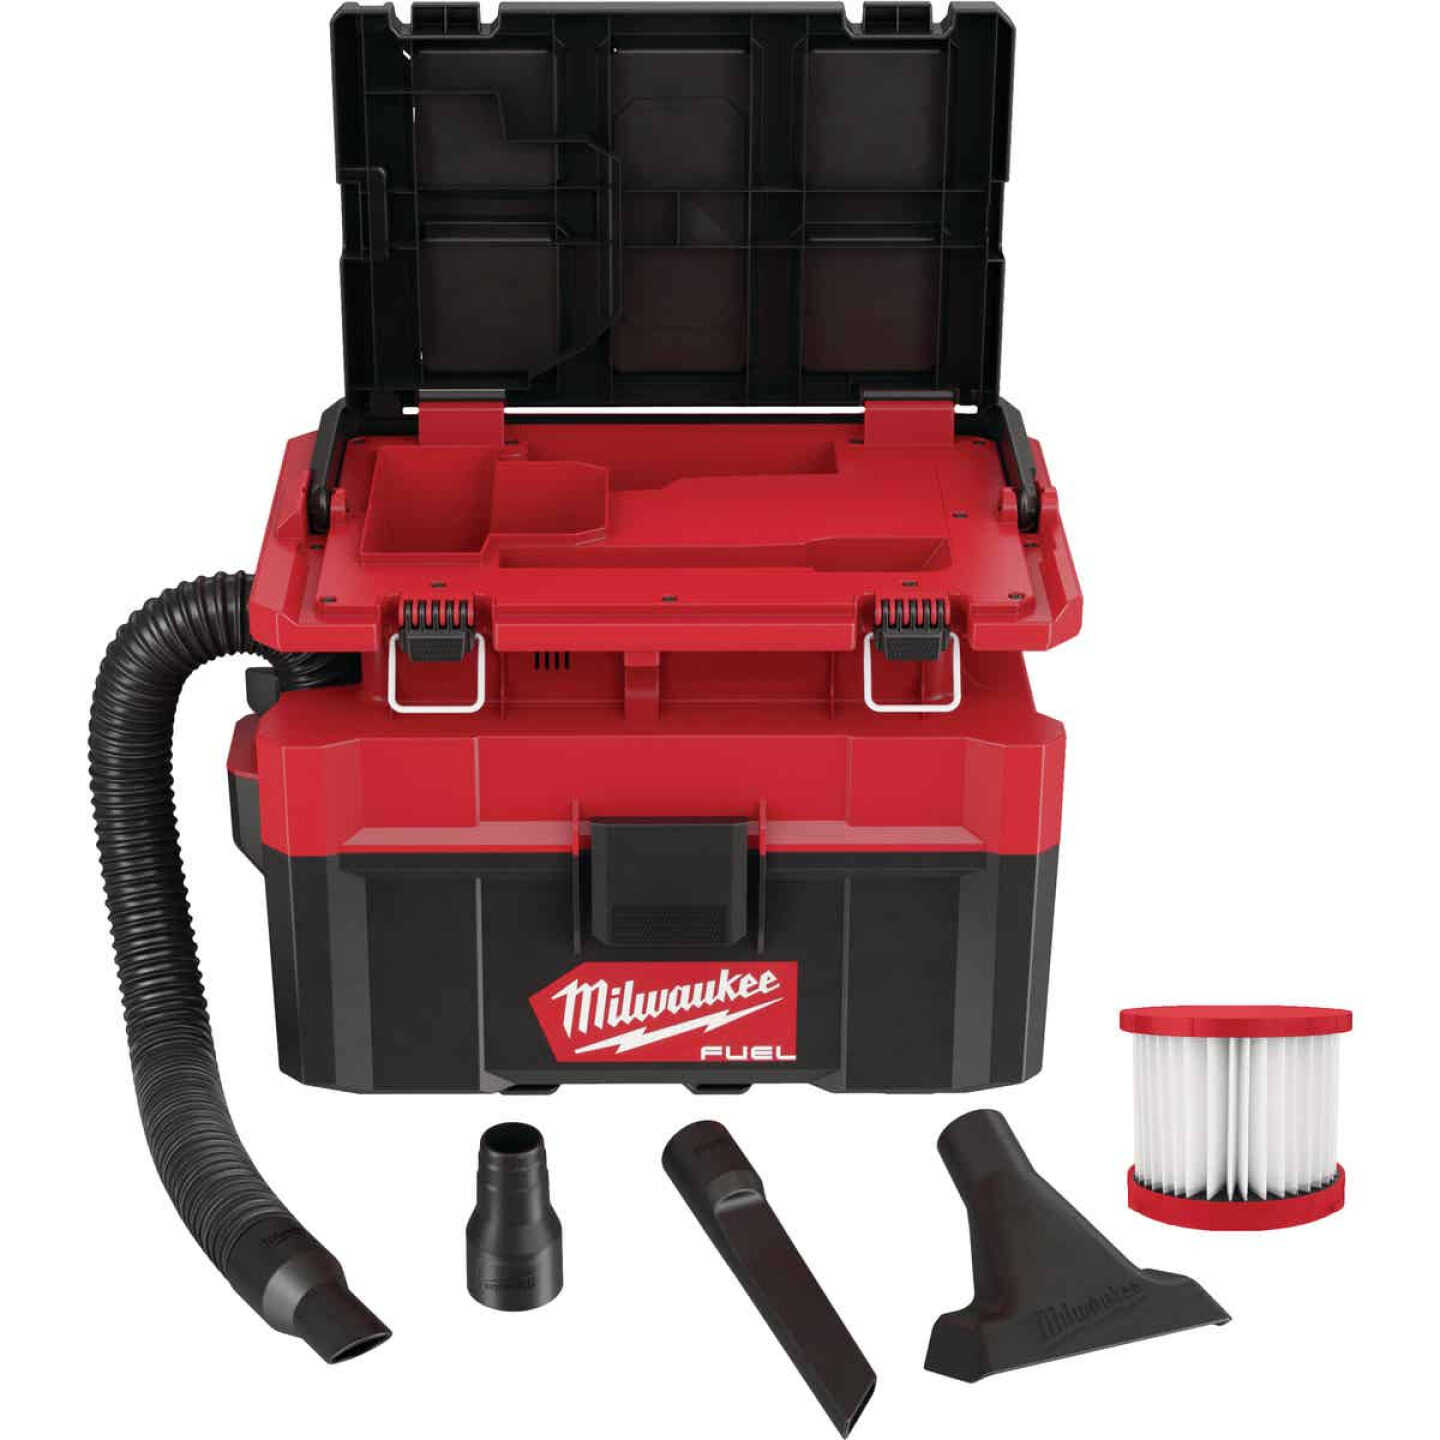 Milwaukee M18 FUEL 18 Volt Lithium-Ion Brushless 2.5 Gal. PACKOUT Wet/Dry Vacuum (Bare Tool) Image 2